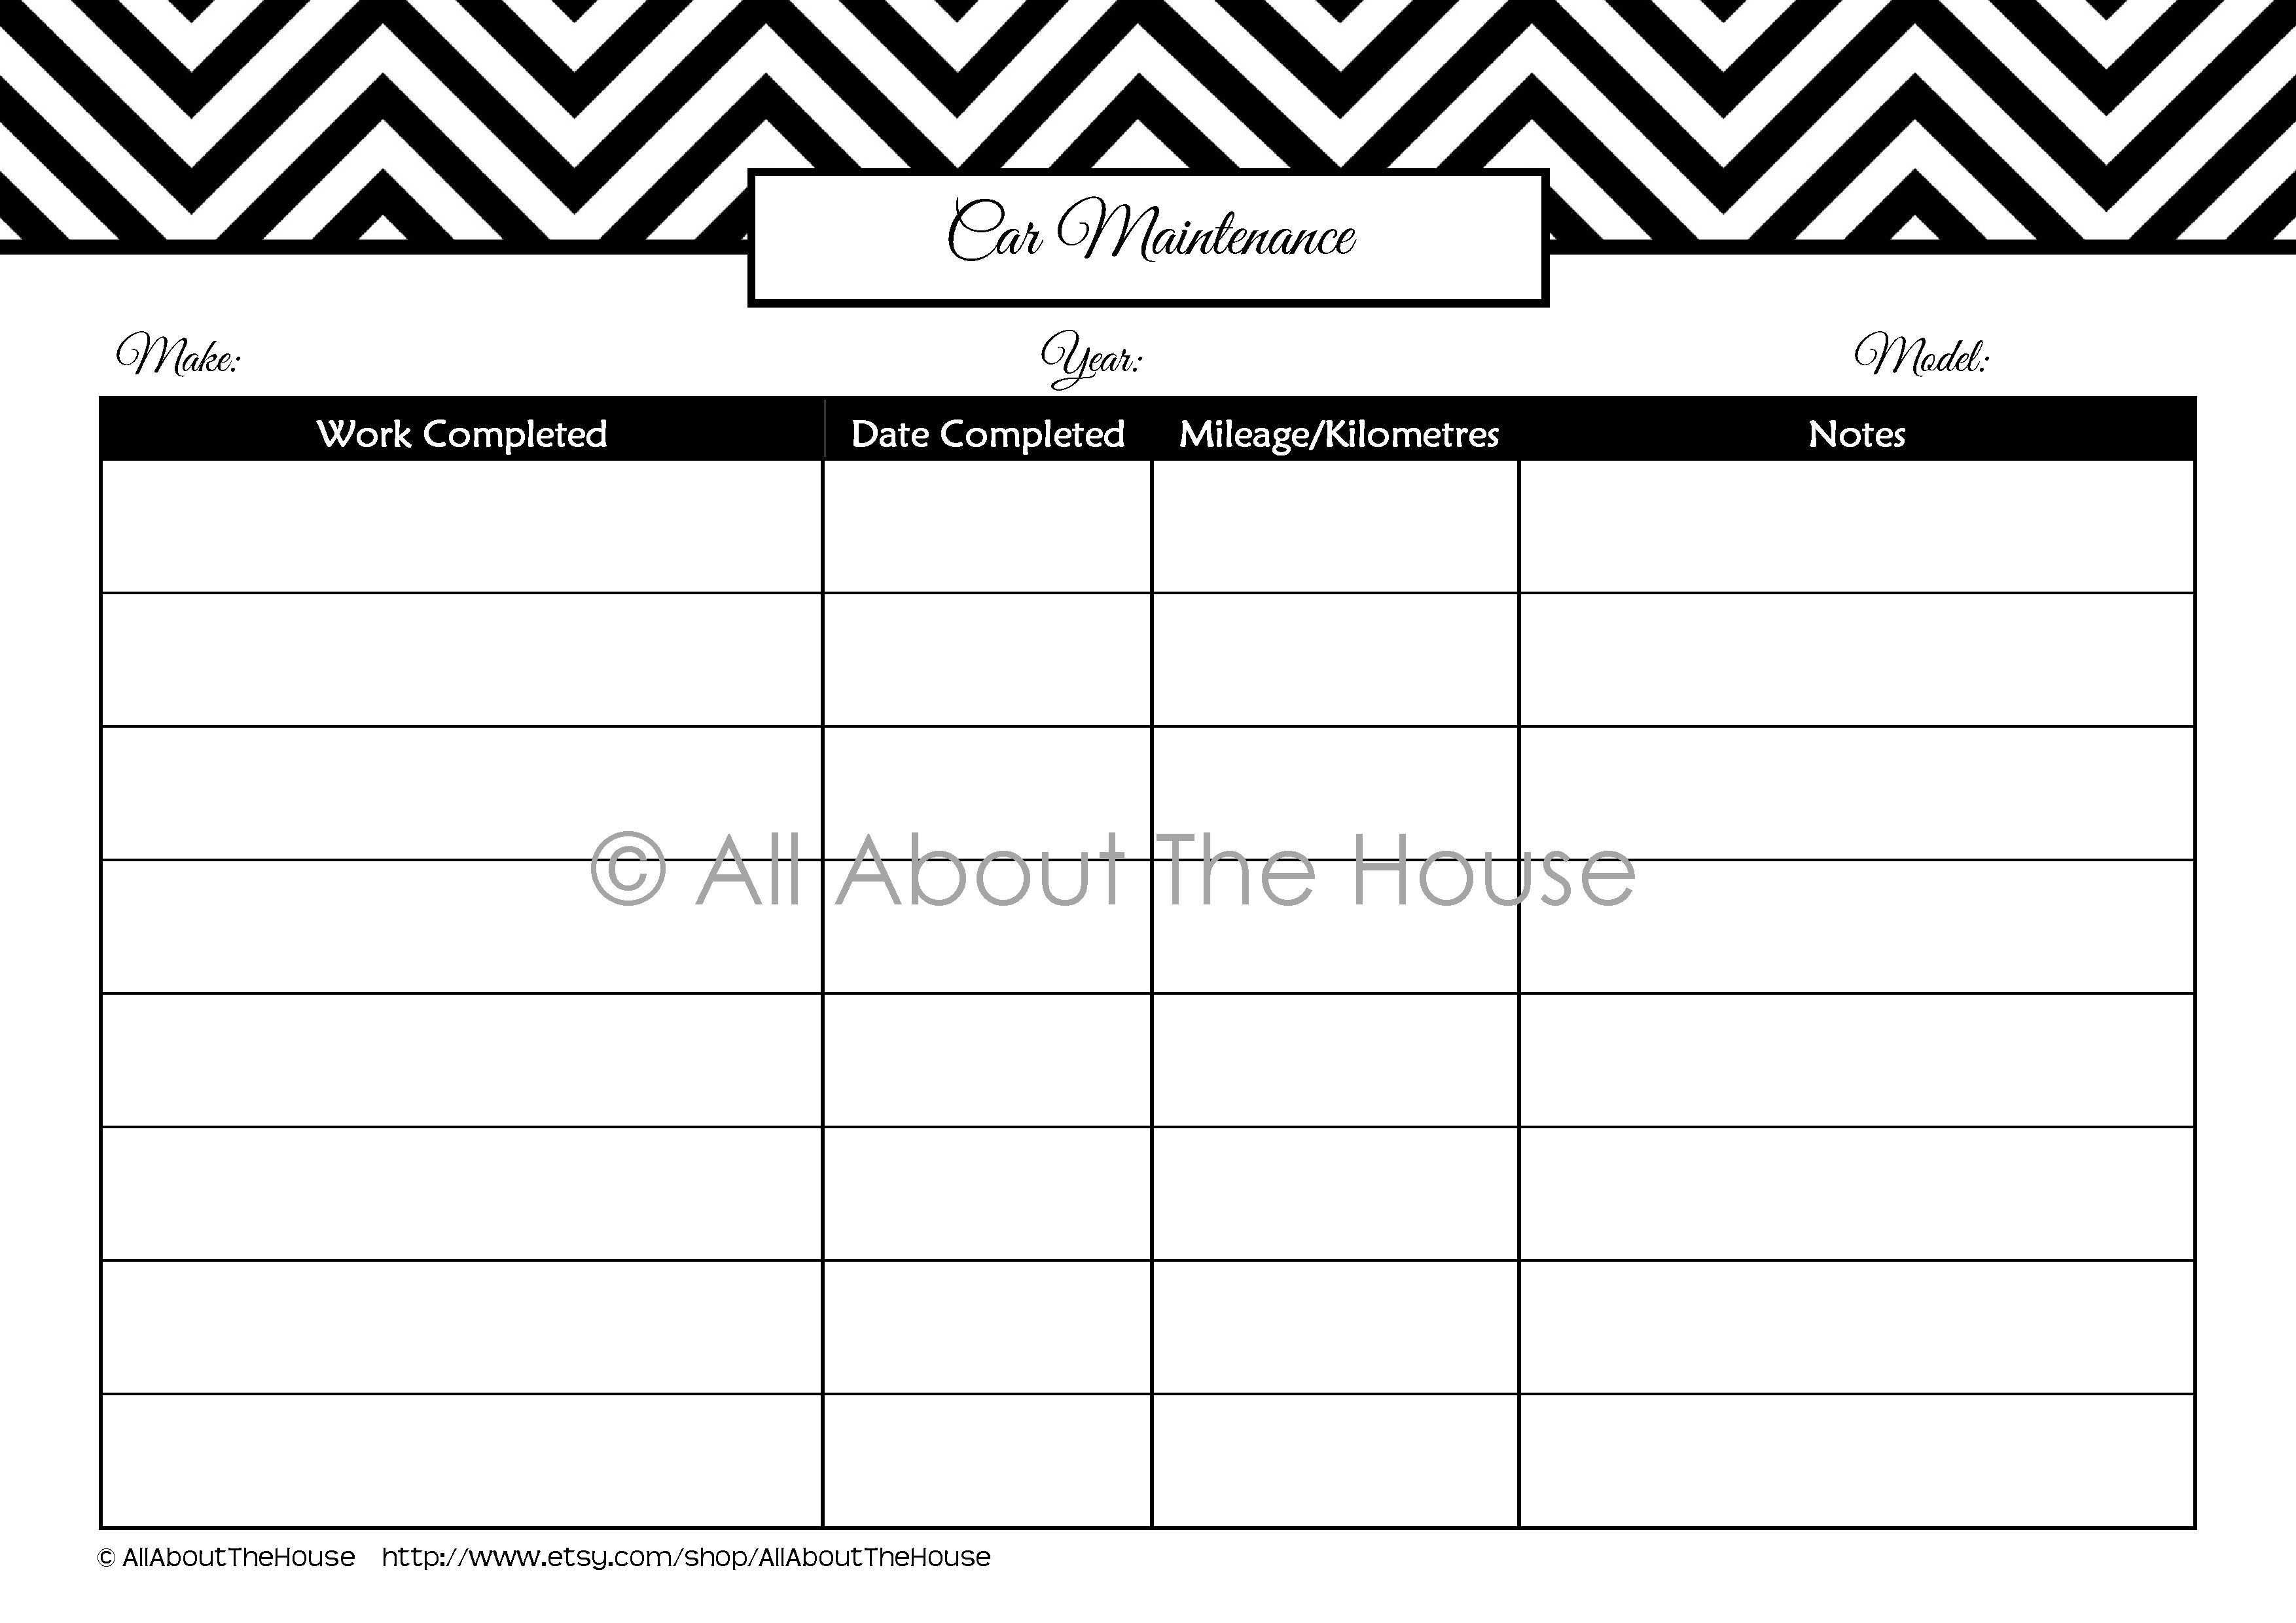 Car Maintenance Printable Allaboutthehouse Printables